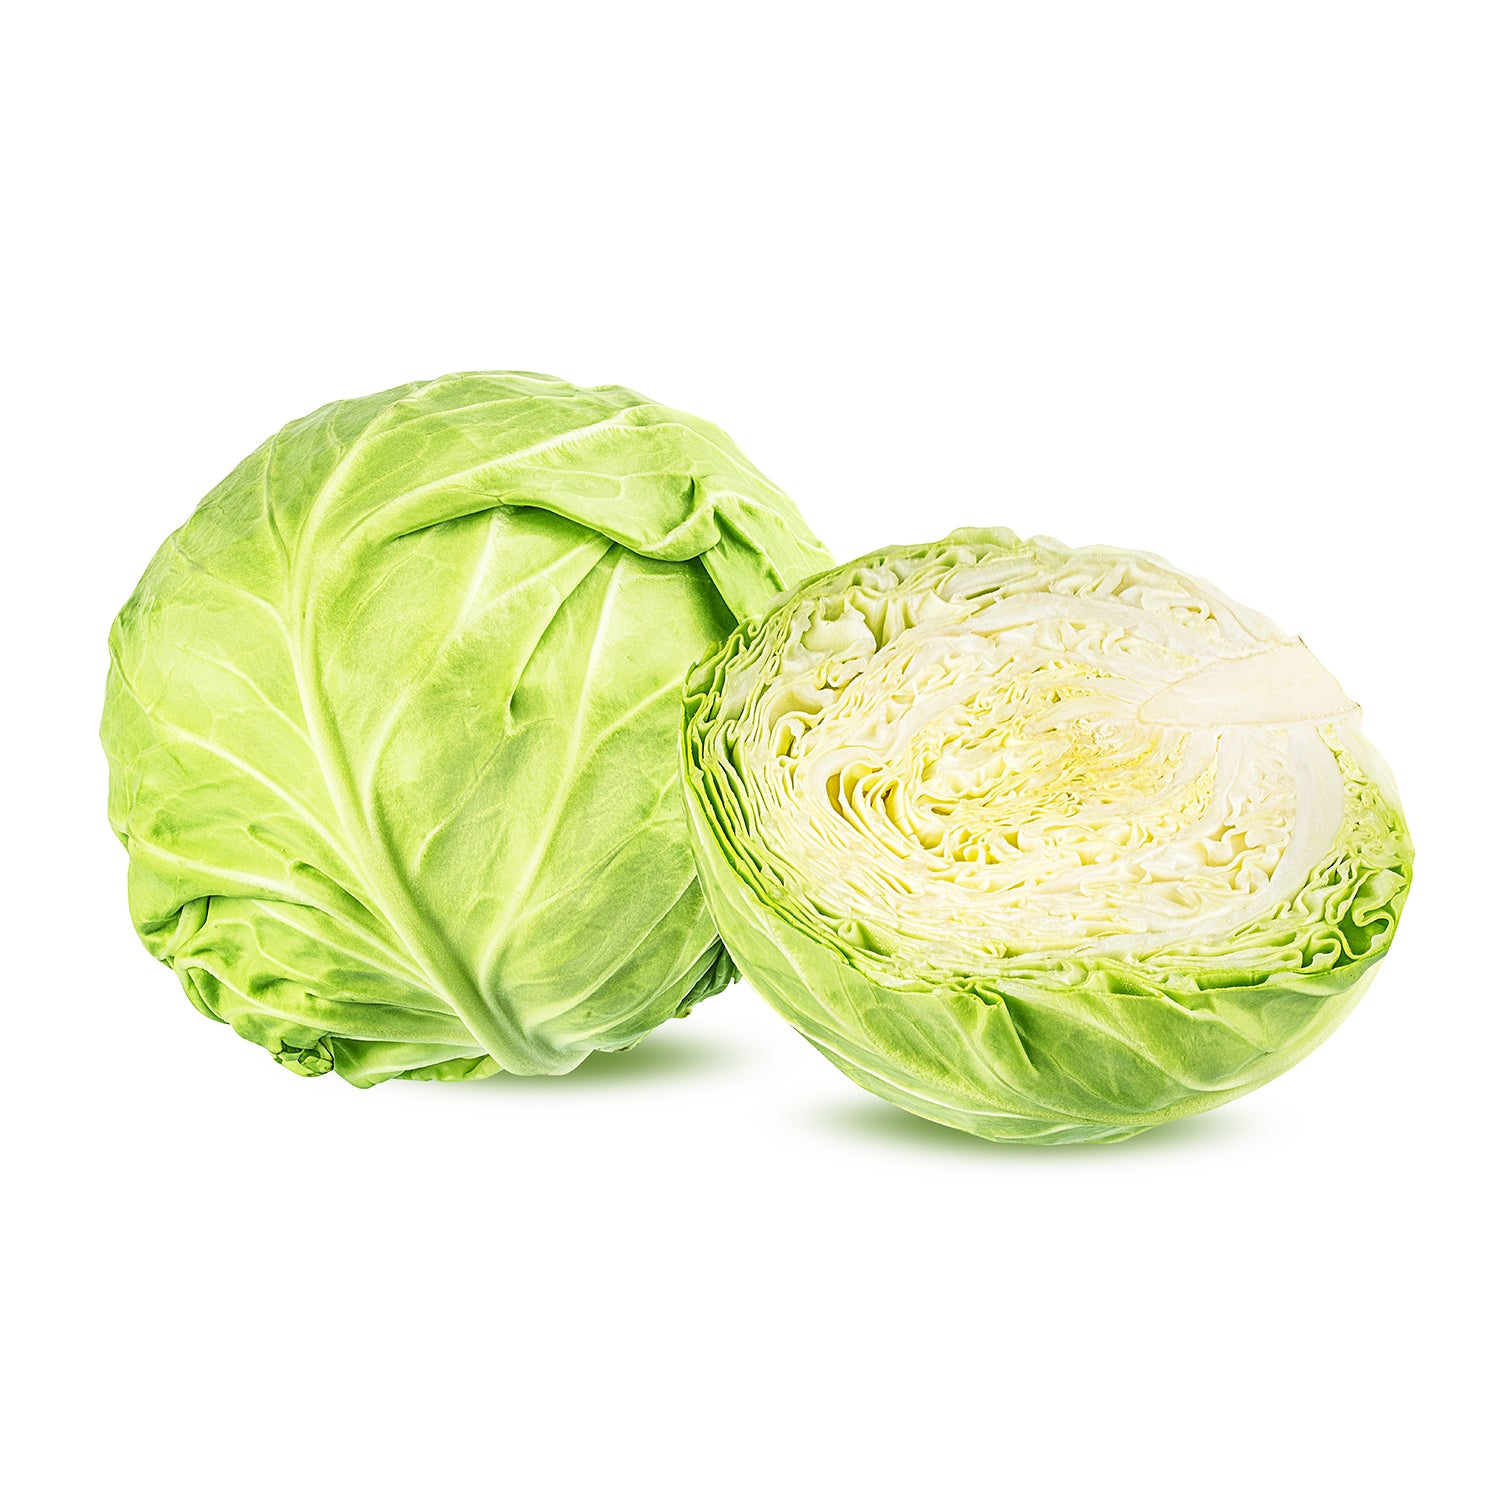 Cabbage (1.8-2.2lbs)